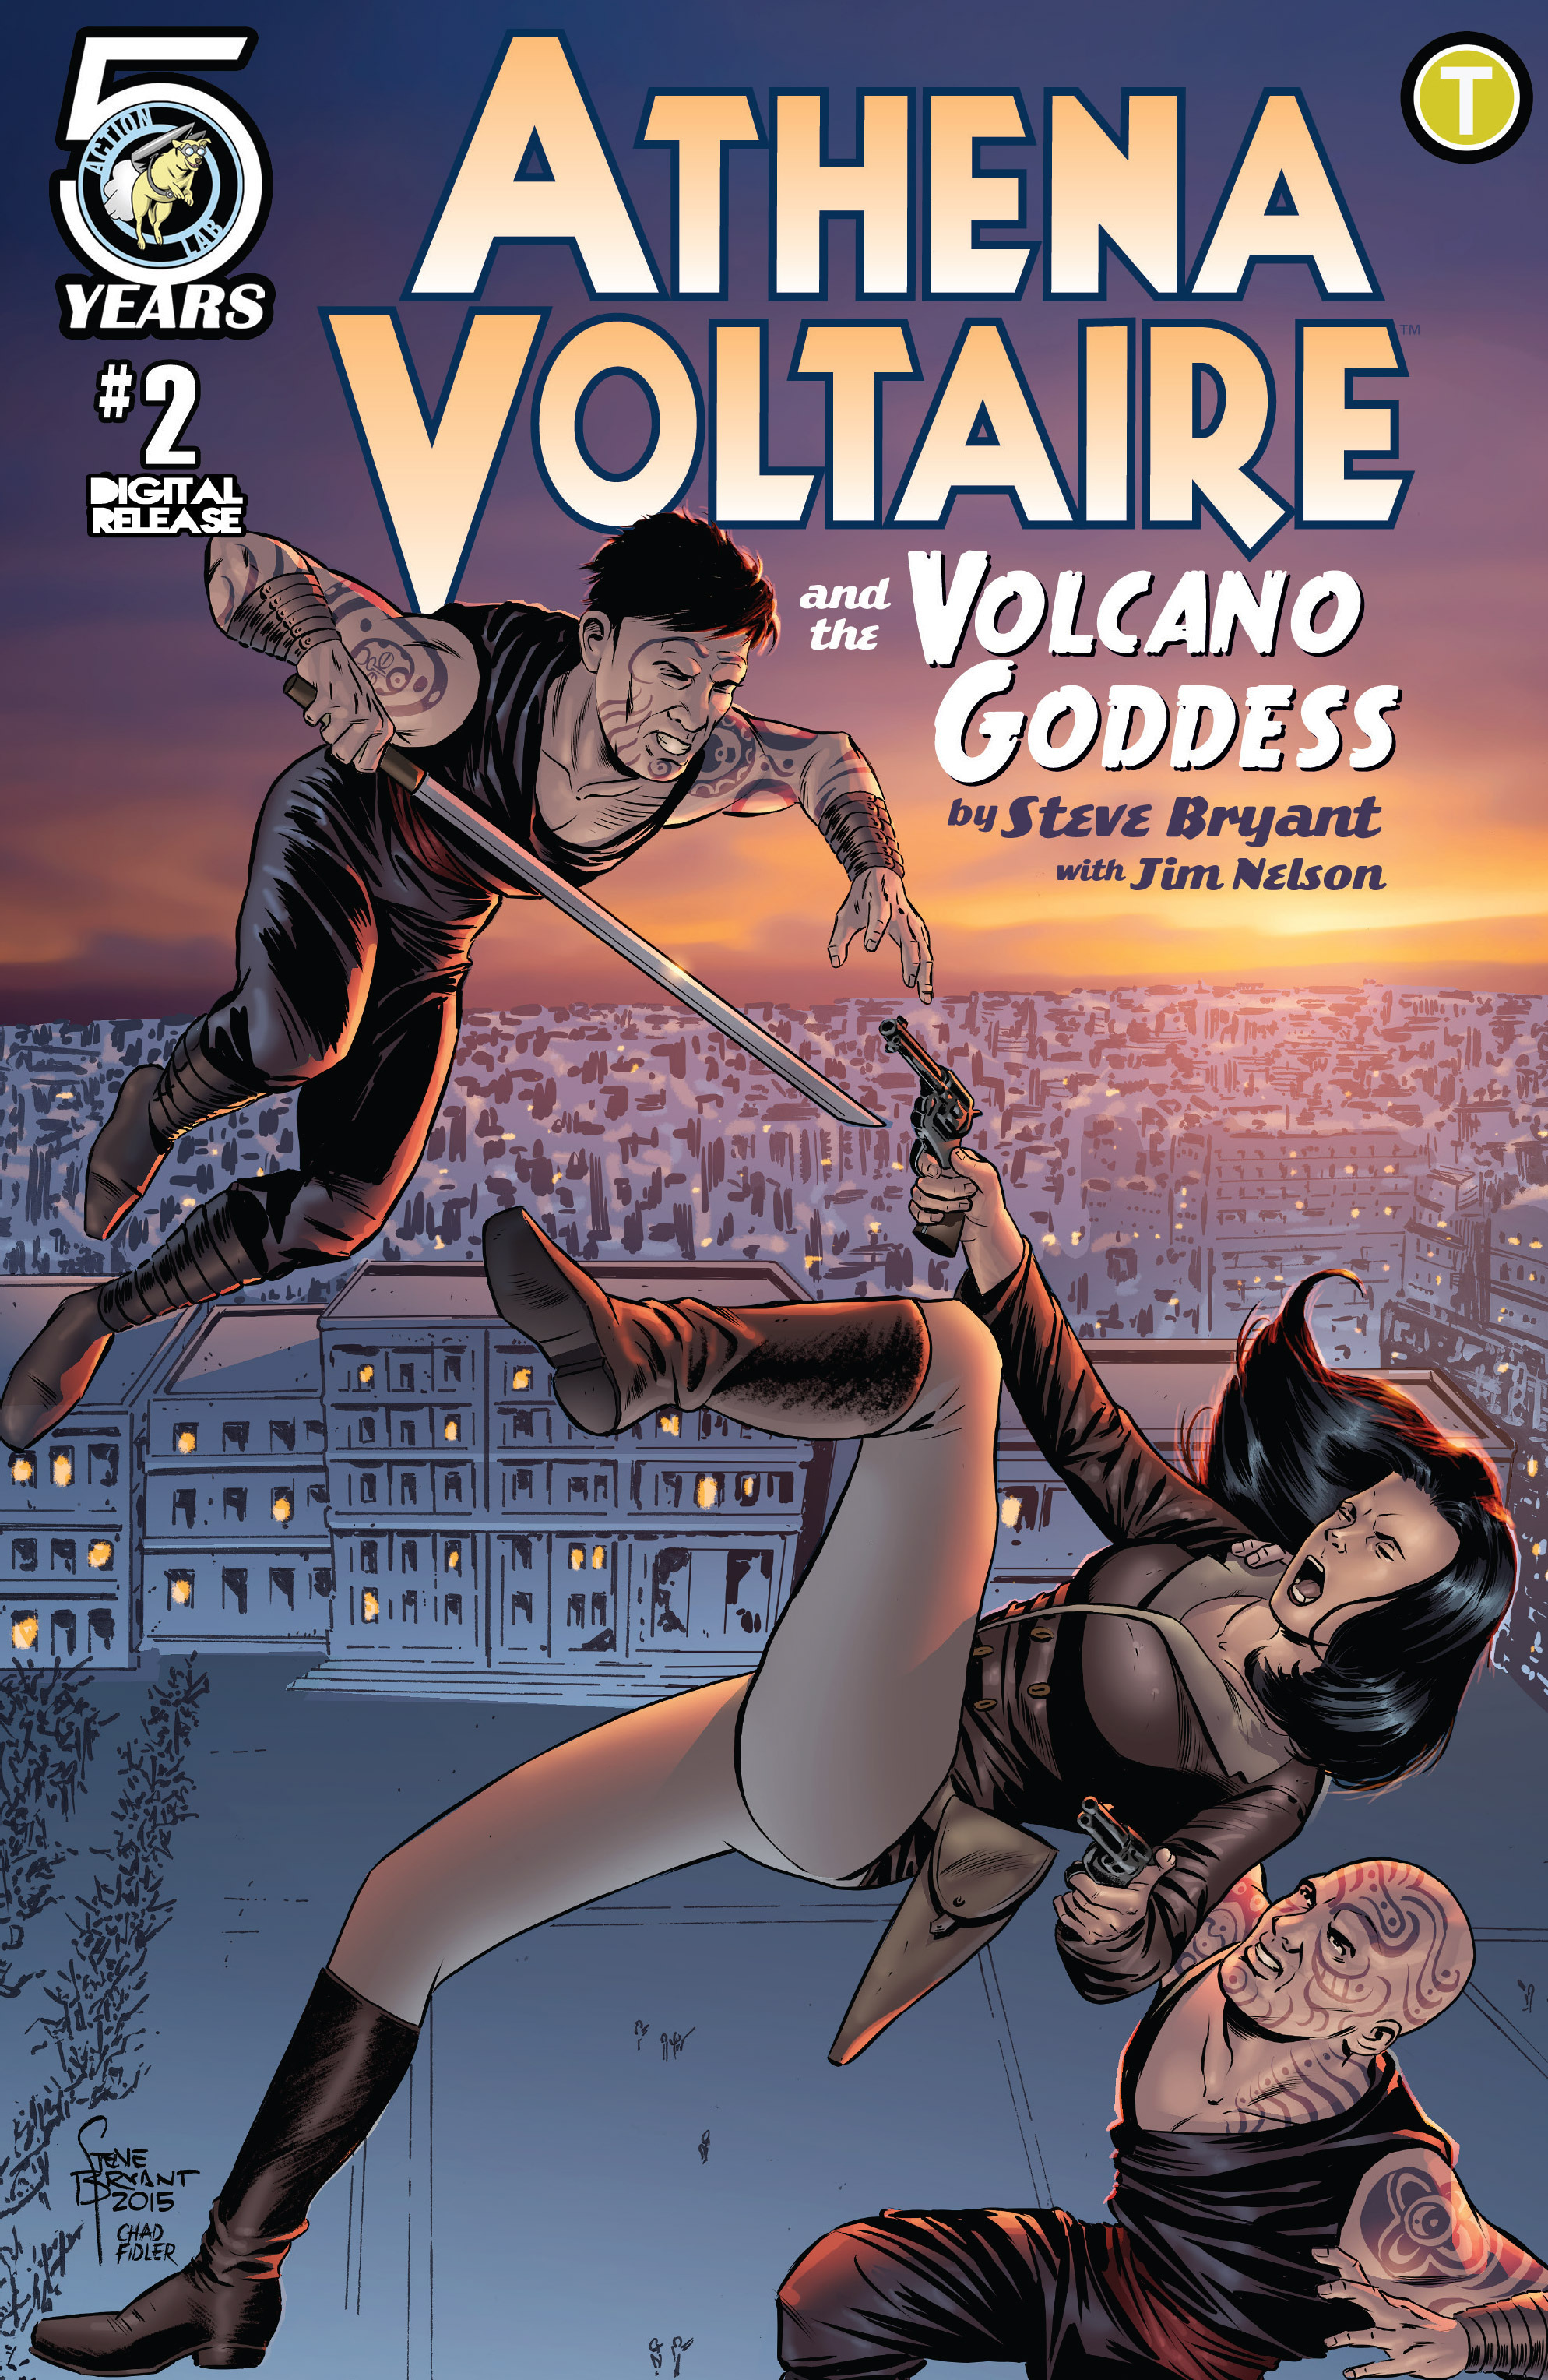 Read online Athena Voltaire and the Volcano Goddess comic -  Issue #2 - 1